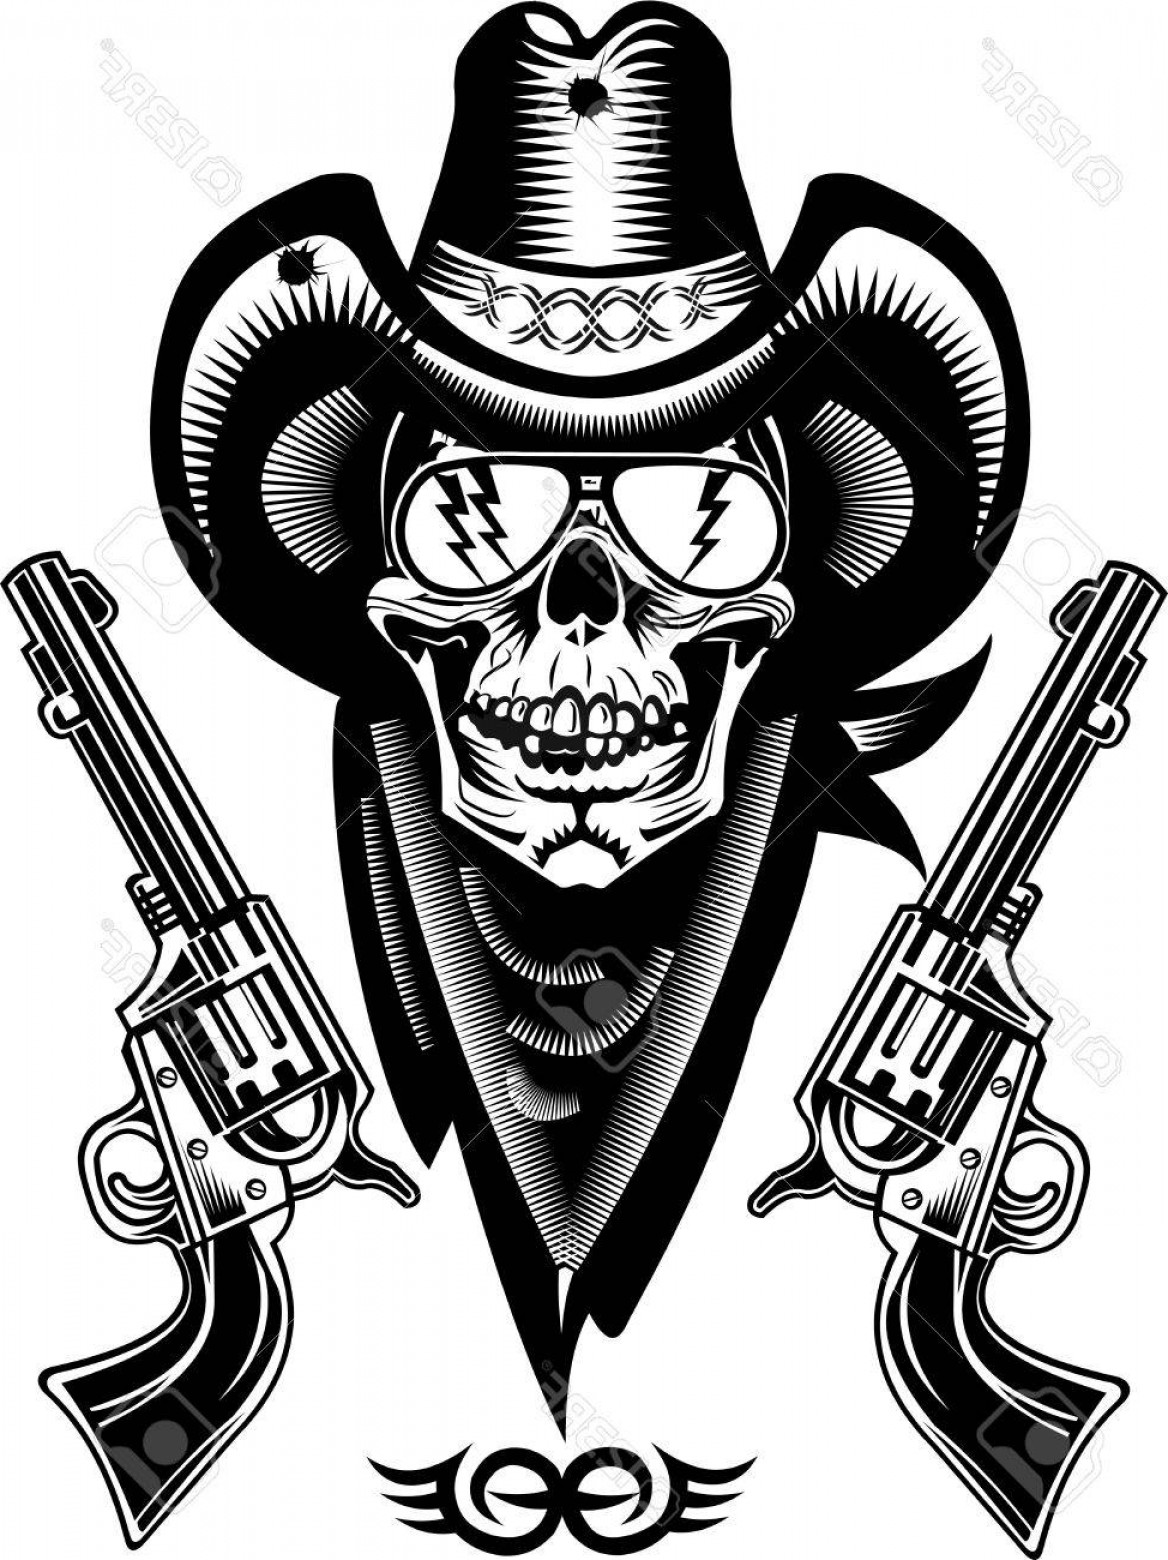 Cowboys Line Drawings Vector: Photostock Vector Cowboy Skull And Revolver